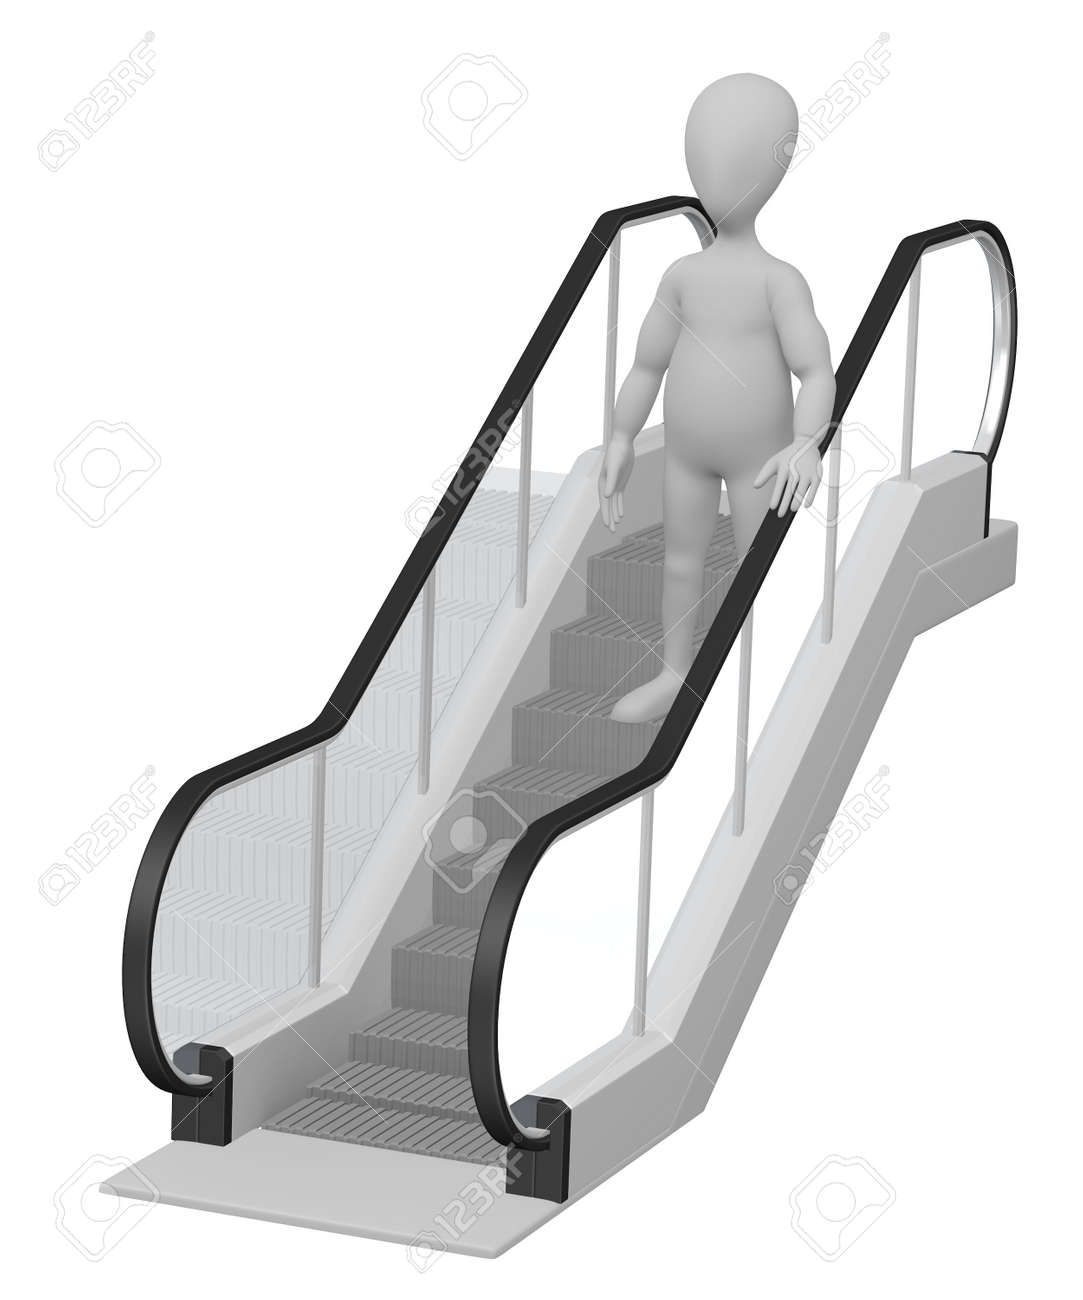 Image result for cartoon pic of escalator